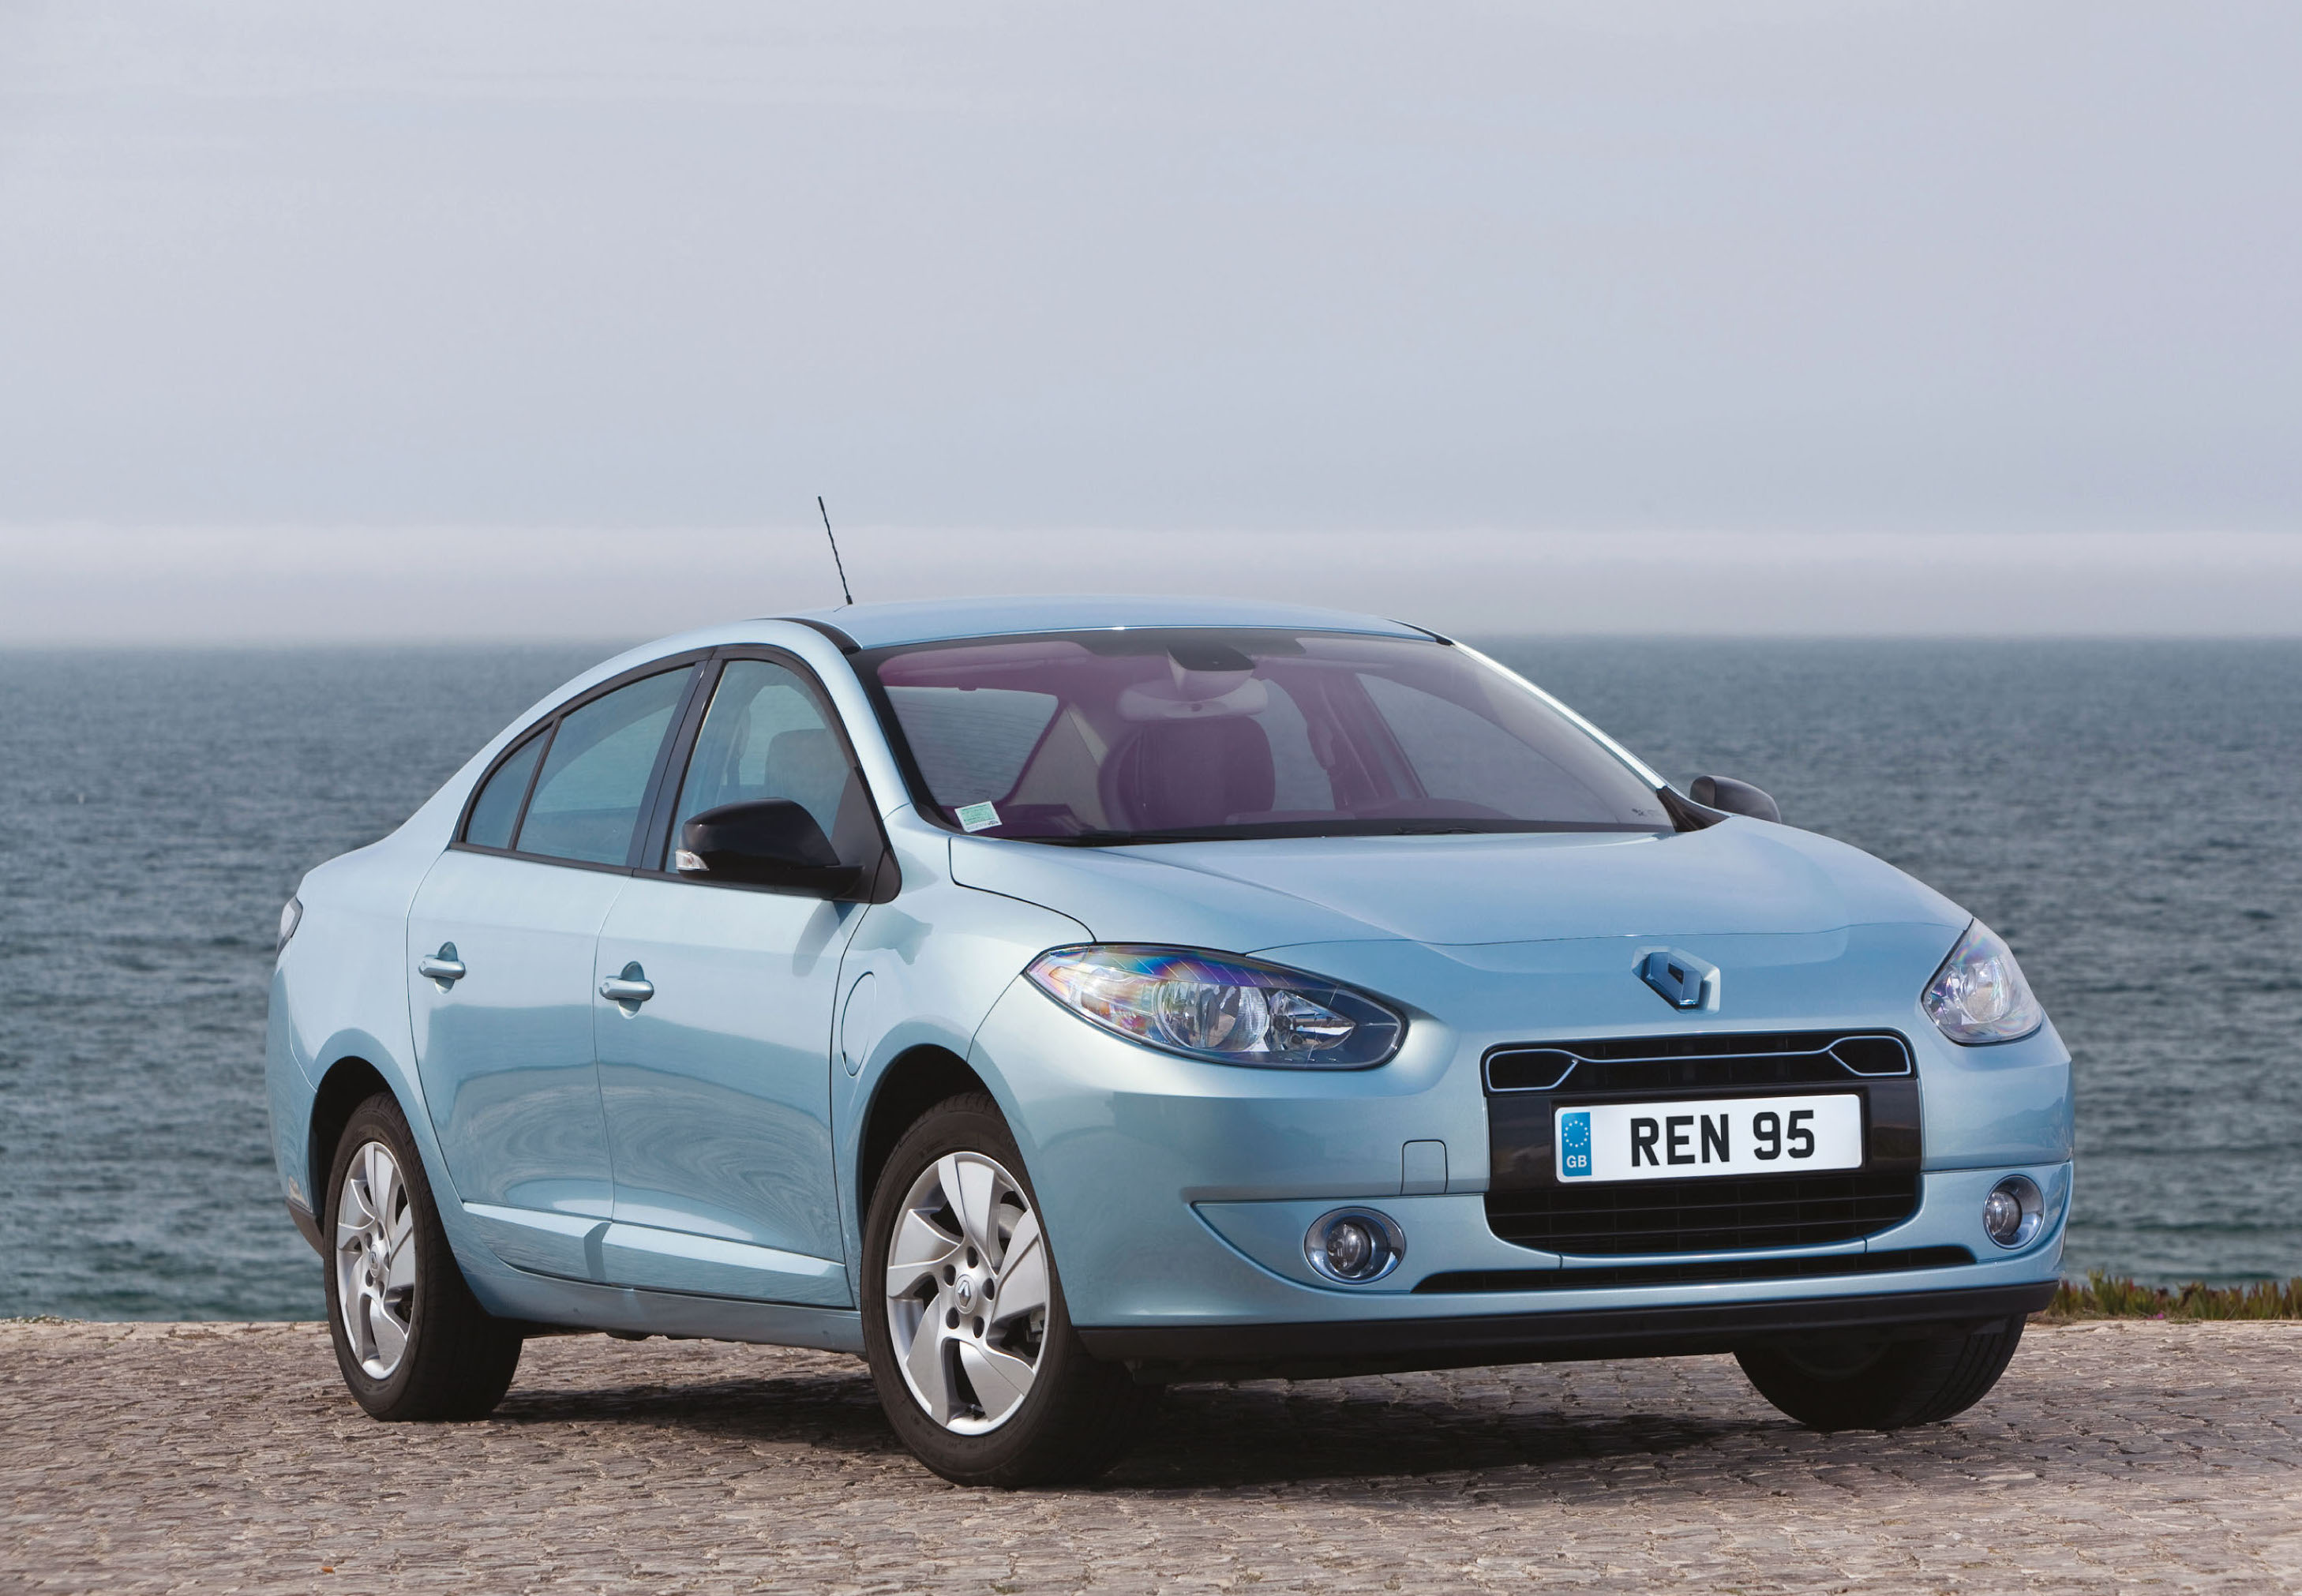 The Fluence afforded drivers a little more cabin space with their electric car